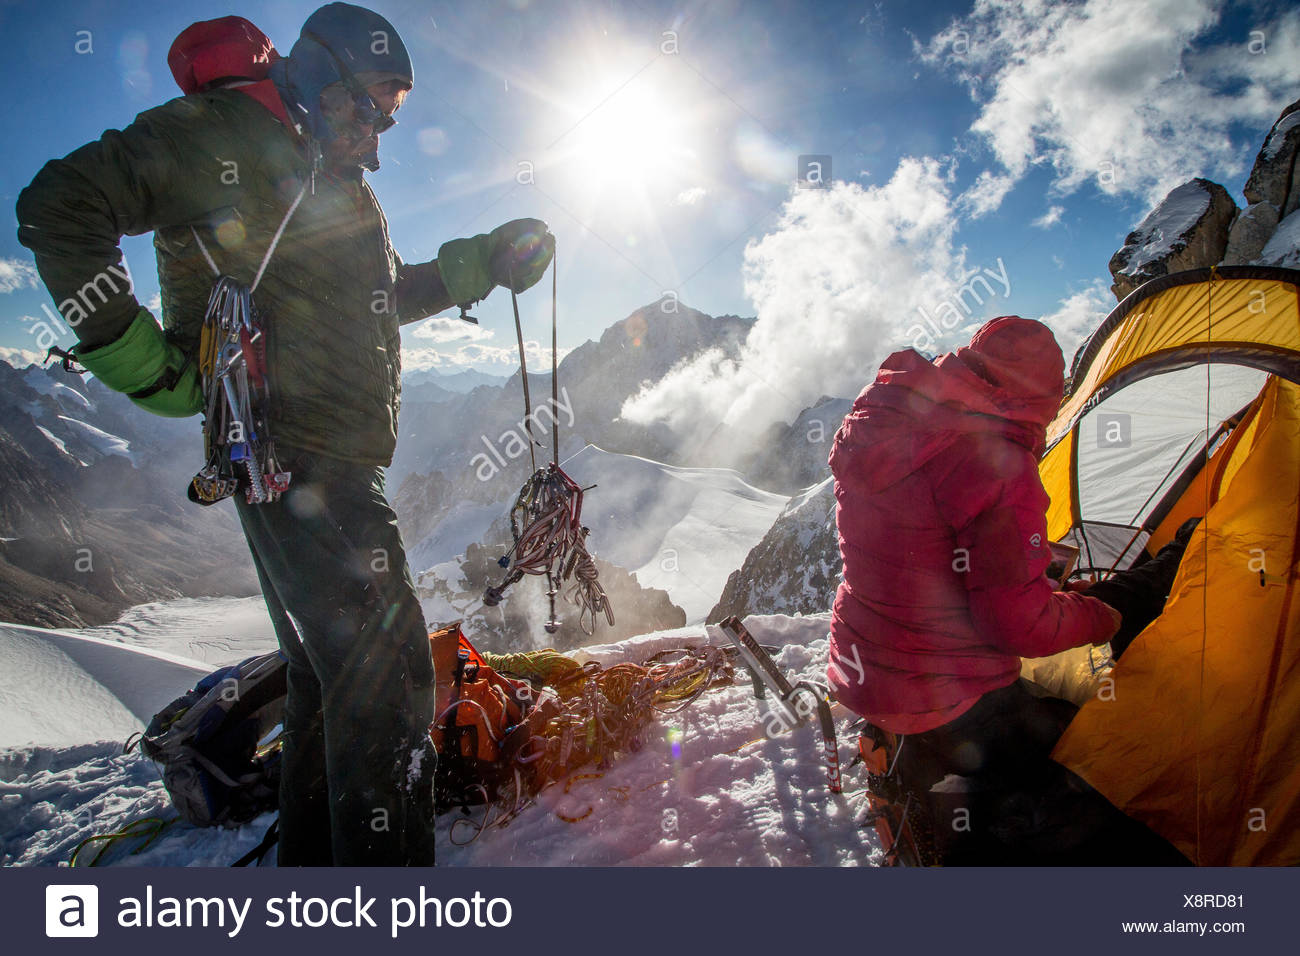 Mountaineers check their gear while on an expedition to summit Hkakabo Razi. - Stock Image